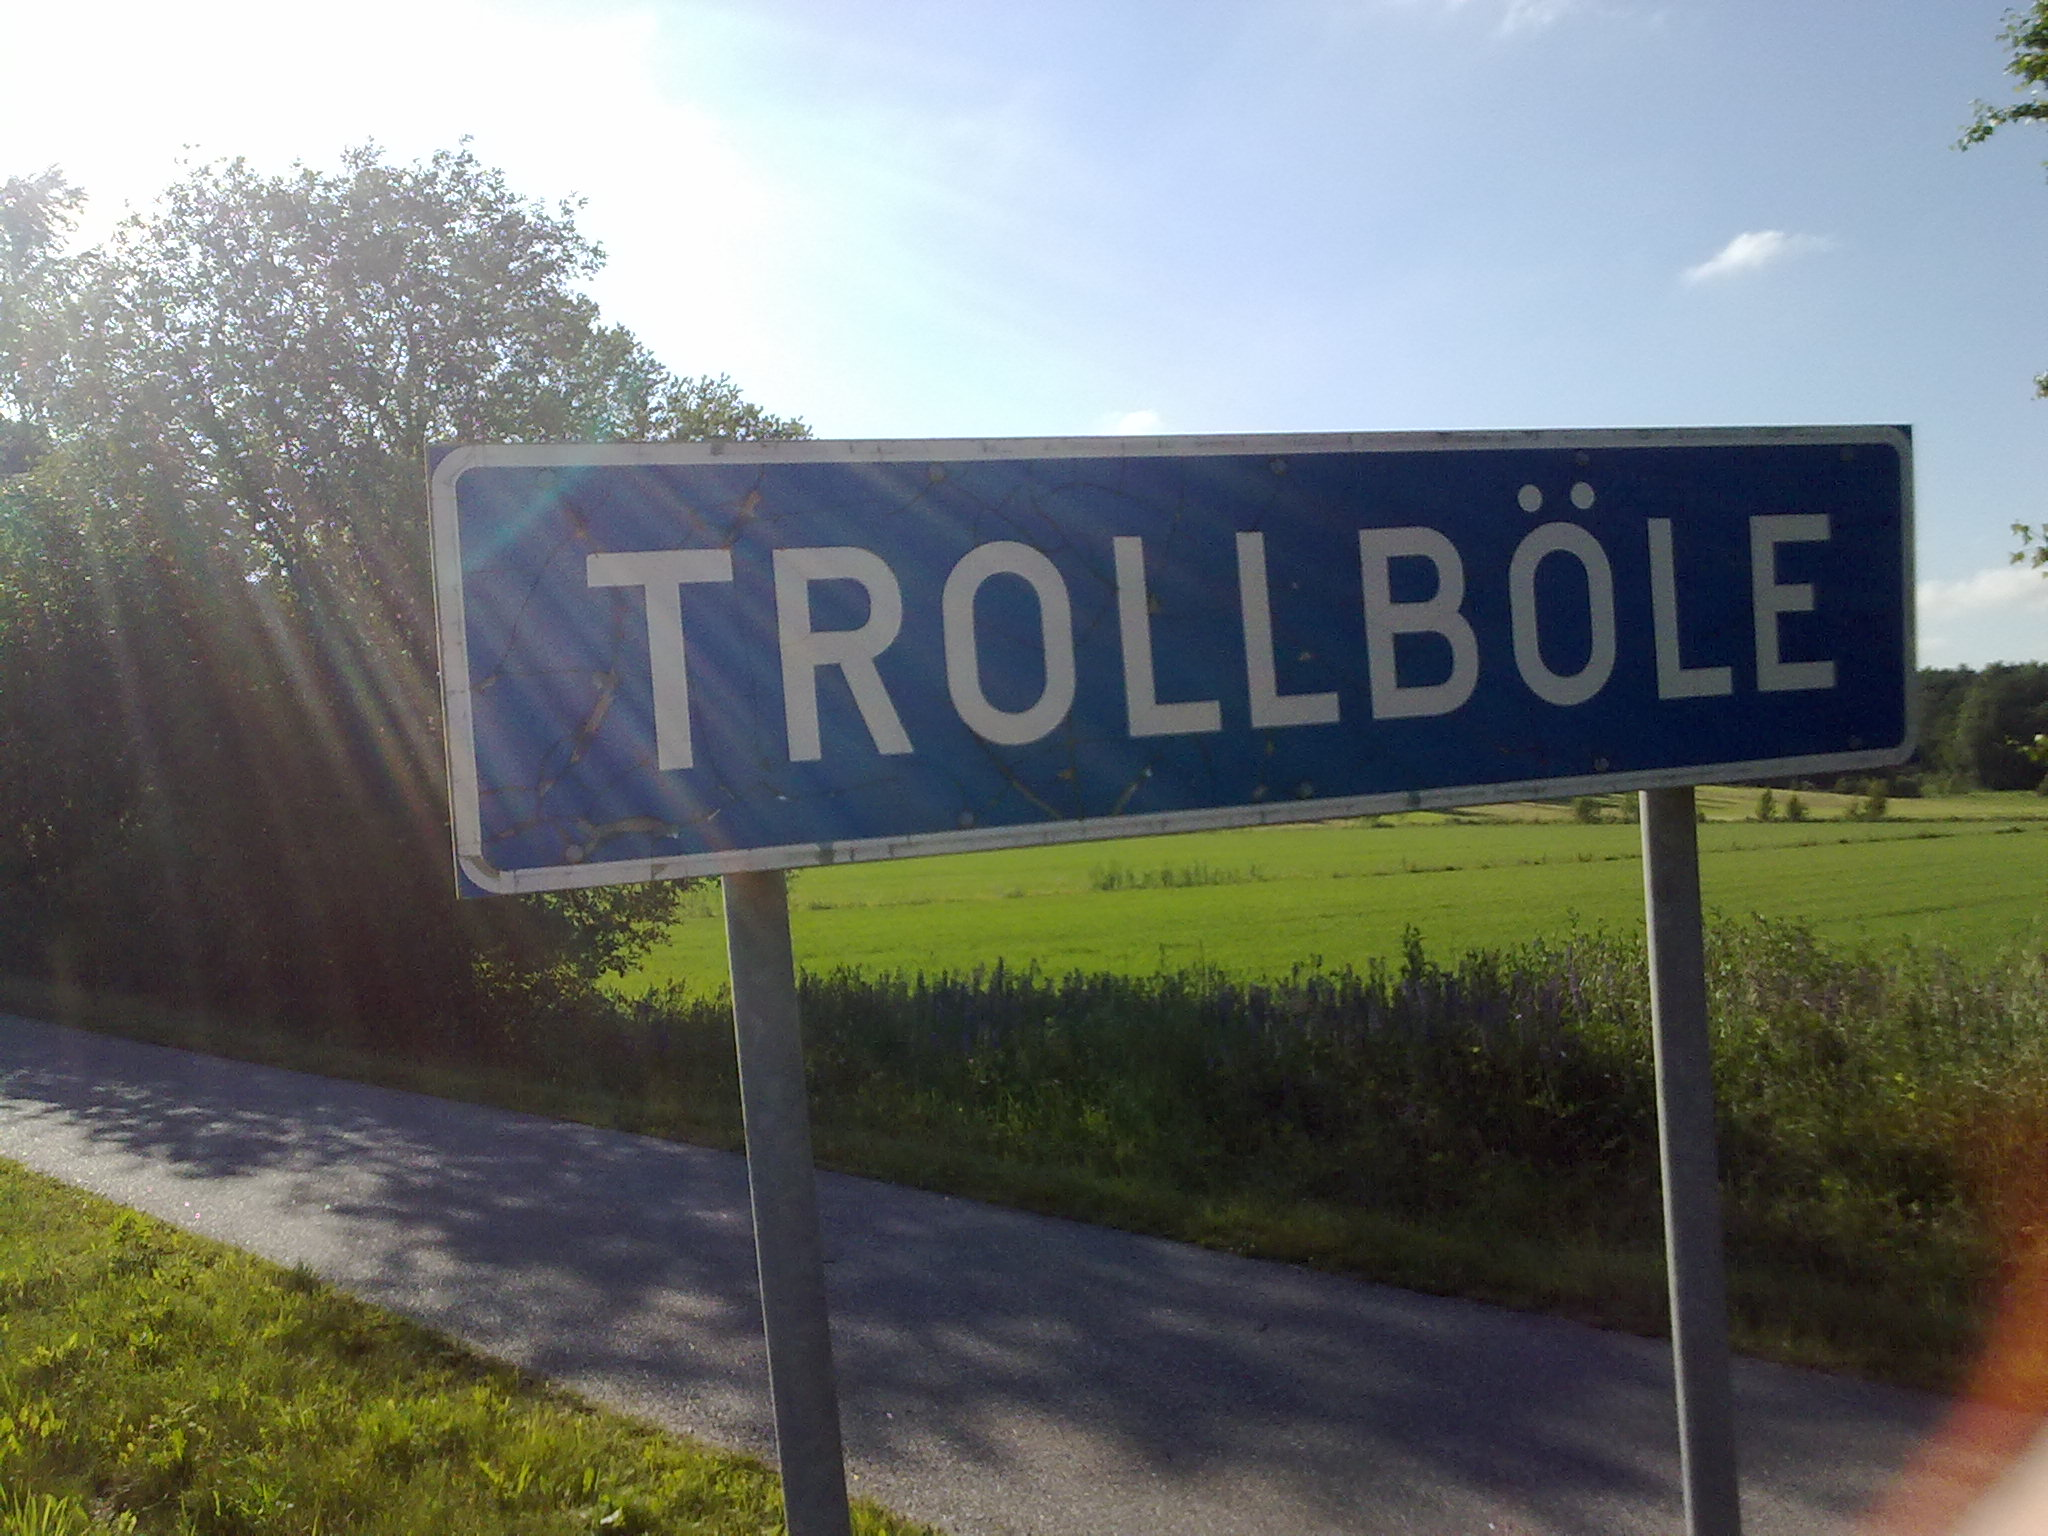 Trollböle-sign